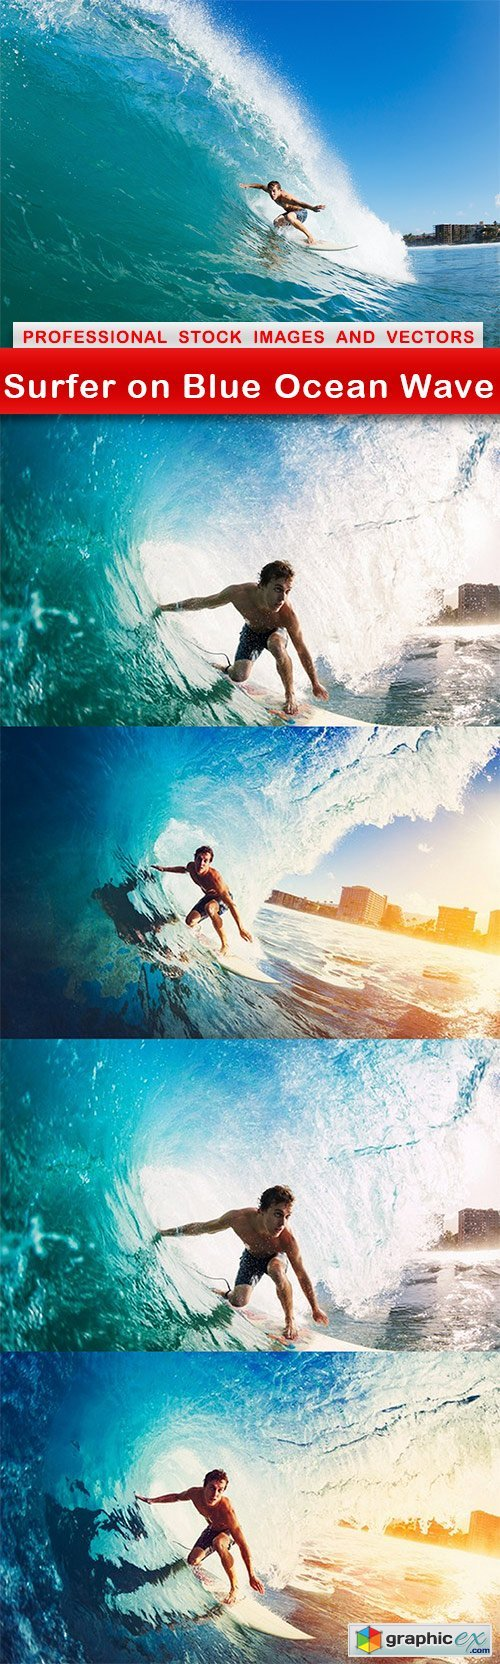 Surfer on Blue Ocean Wave - 5 UHQ JPEG